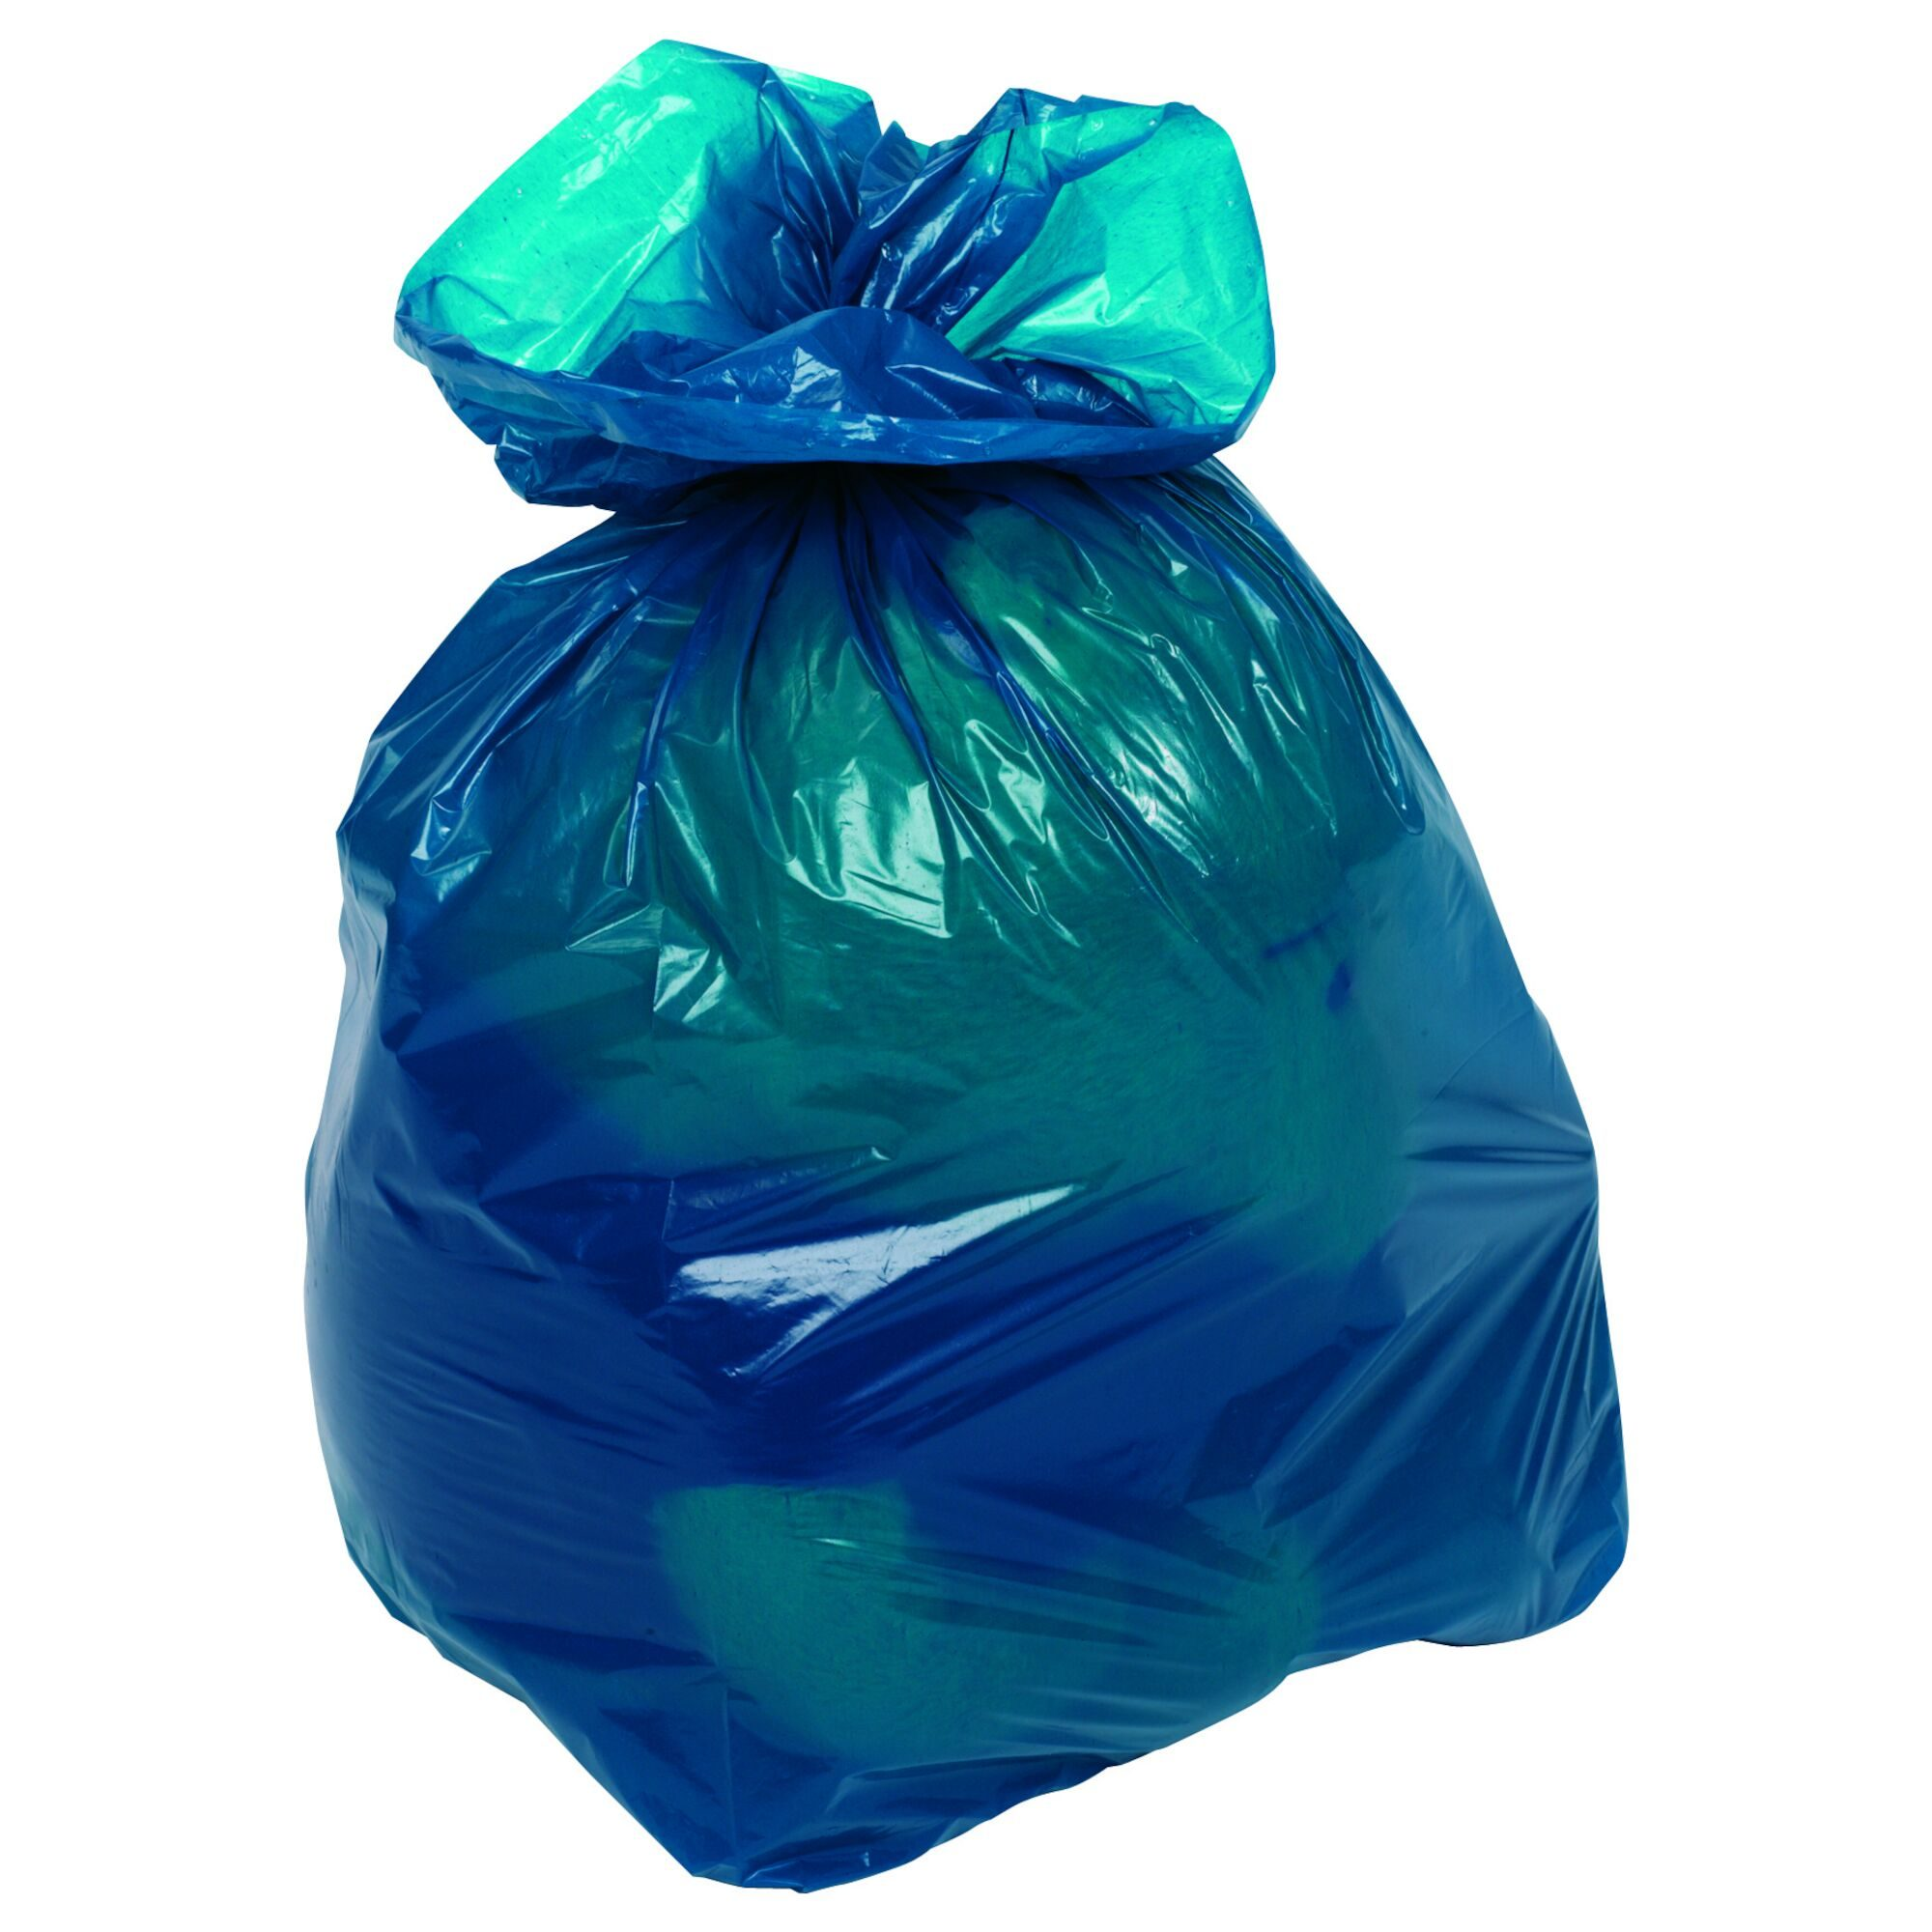 Clear & Coloured Refuse Sacks - Blue